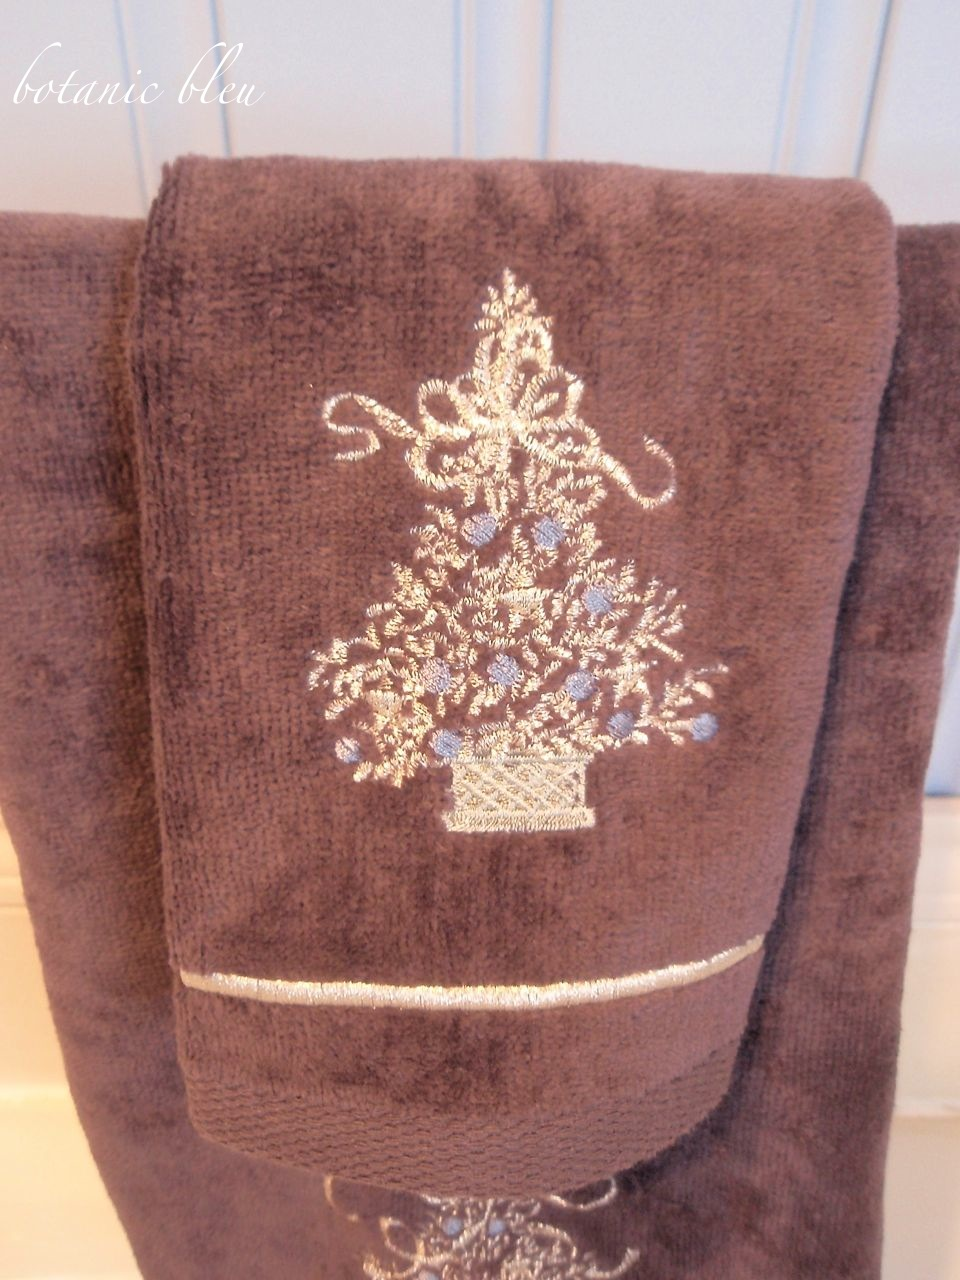 Botanic Bleu Stars Trees Angels in the Christmas Master Bath  Kingsley Alpine Christmas Bathroom Towel. Rustic Bathroom Lighting Ideas